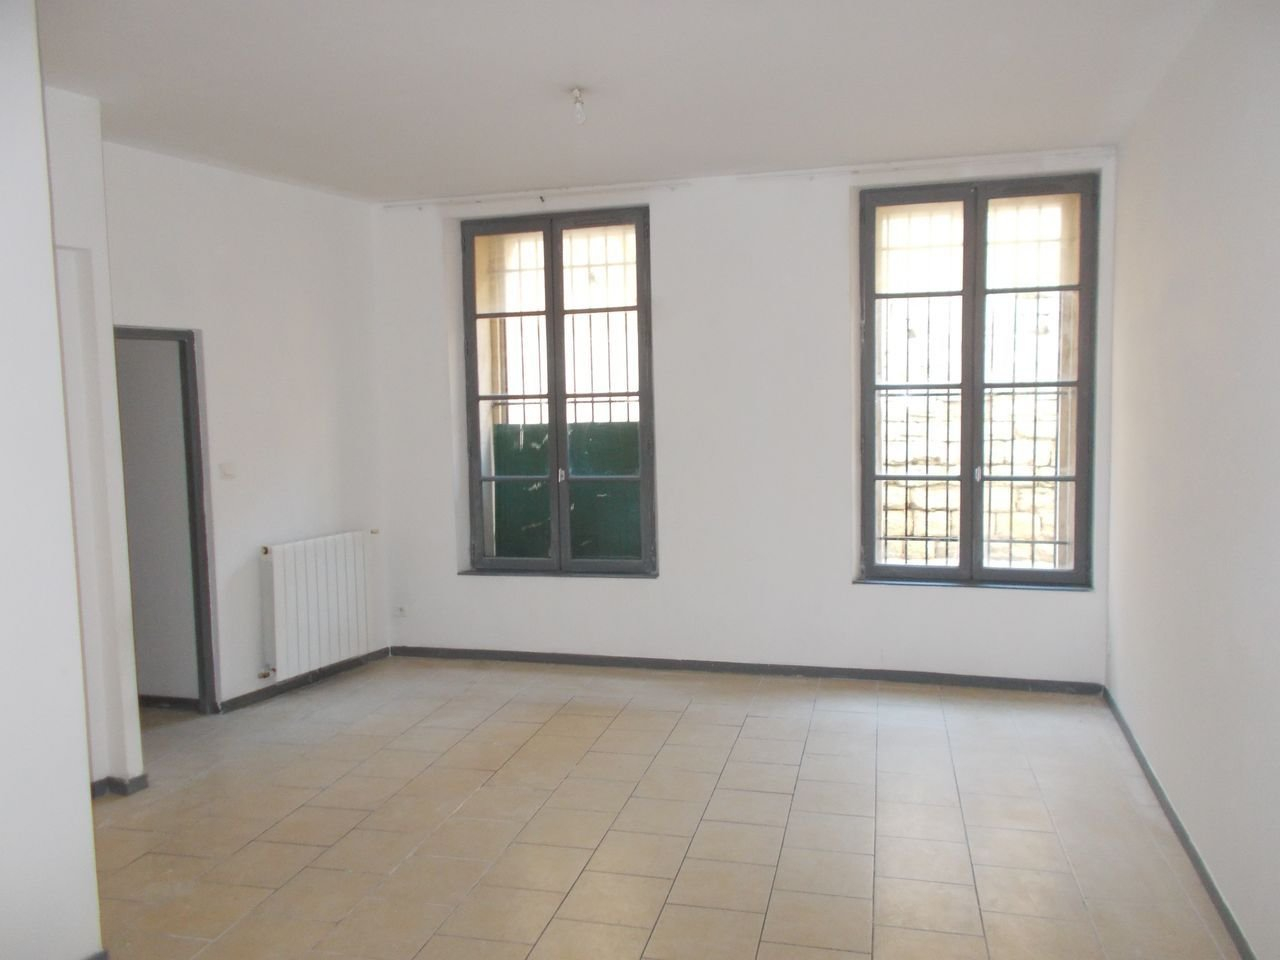 Vente Appartement BEAUCAIRE surface habitable de 85 m²